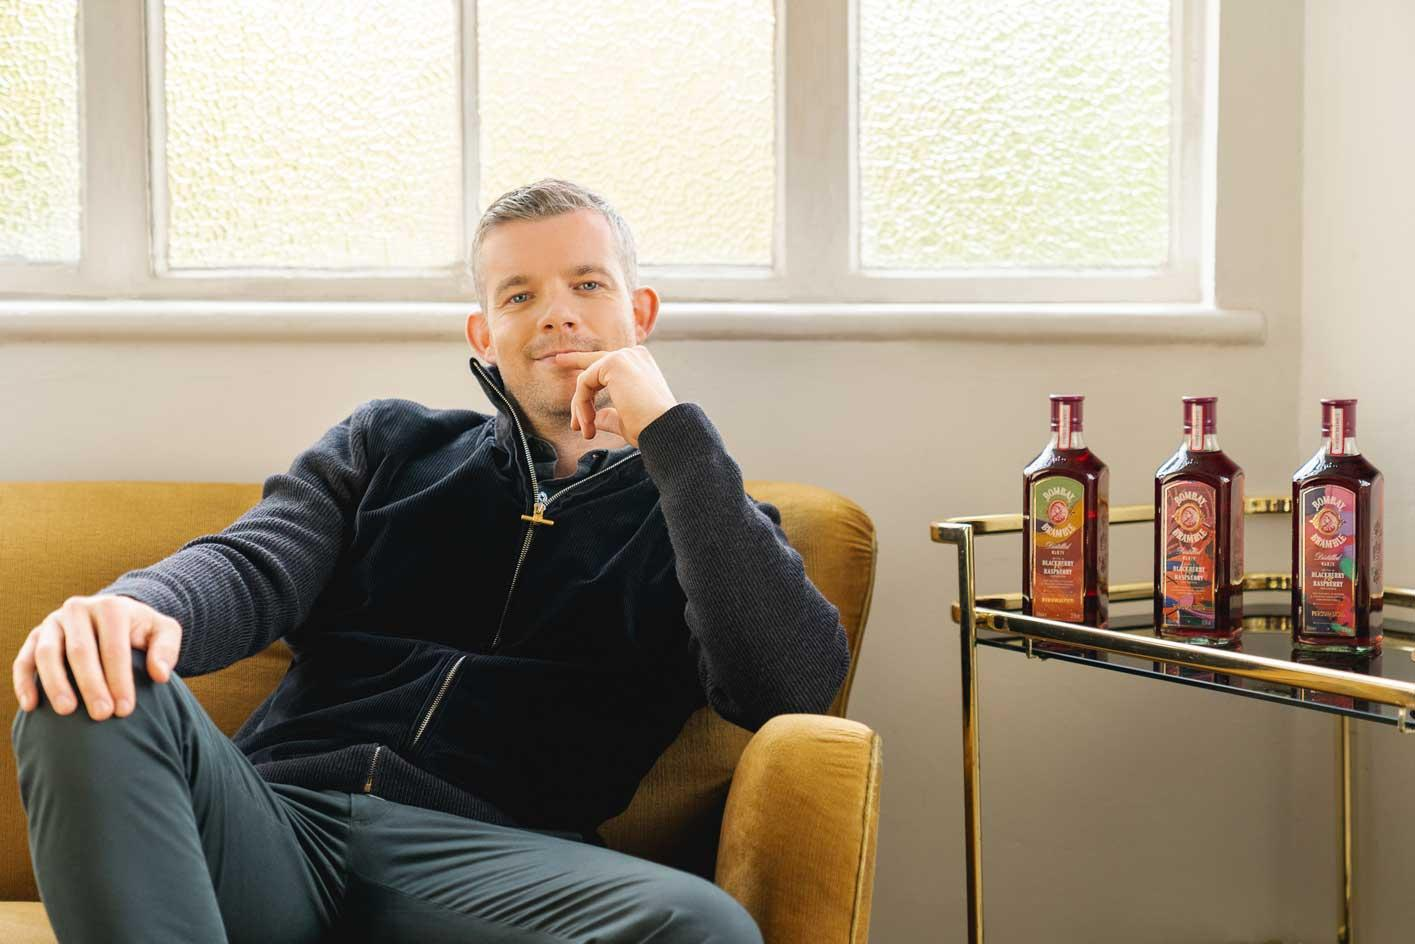 Actor and host of podcast 'Talk Art' Russell Tovey with the limited-edition bottles from his new curatorial project with Bombay Sapphire